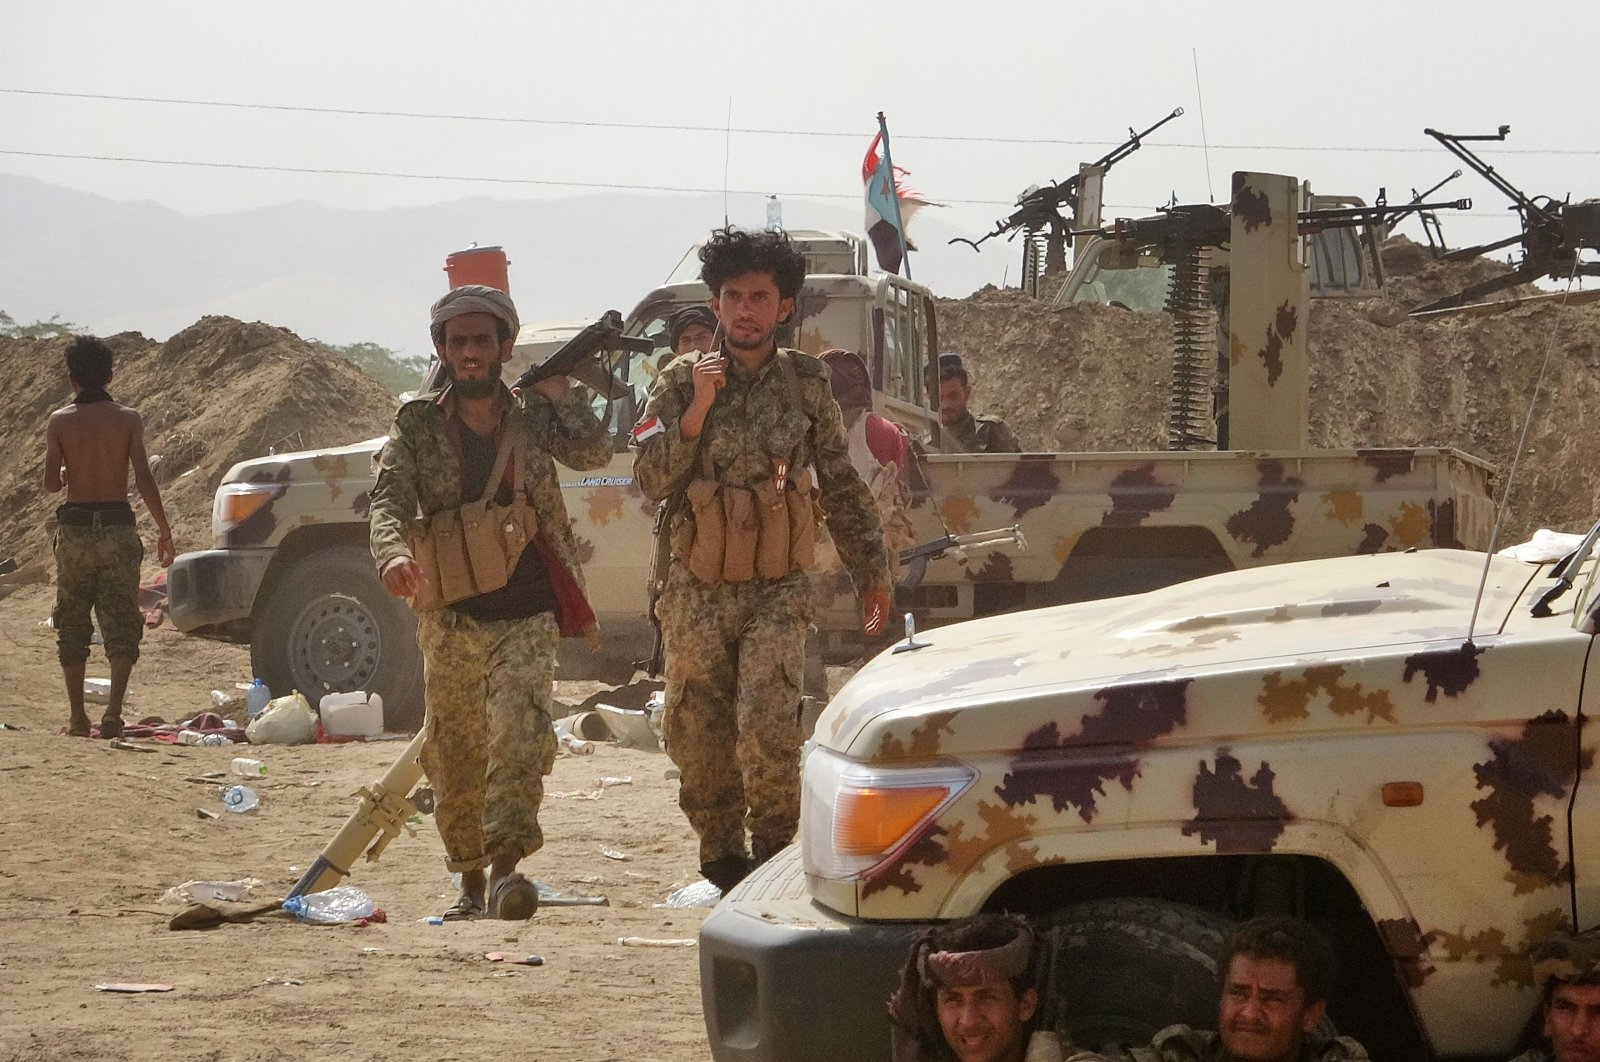 Fighters loyal to Yemen's Southern Transitional Council (STC) separatists gather at the frontline during clashes with pro-government forces for control of Zinjibar, the capital of the southern Abyan province, in Sheikh Salim area, May 16, 2020. (AFP Photo)